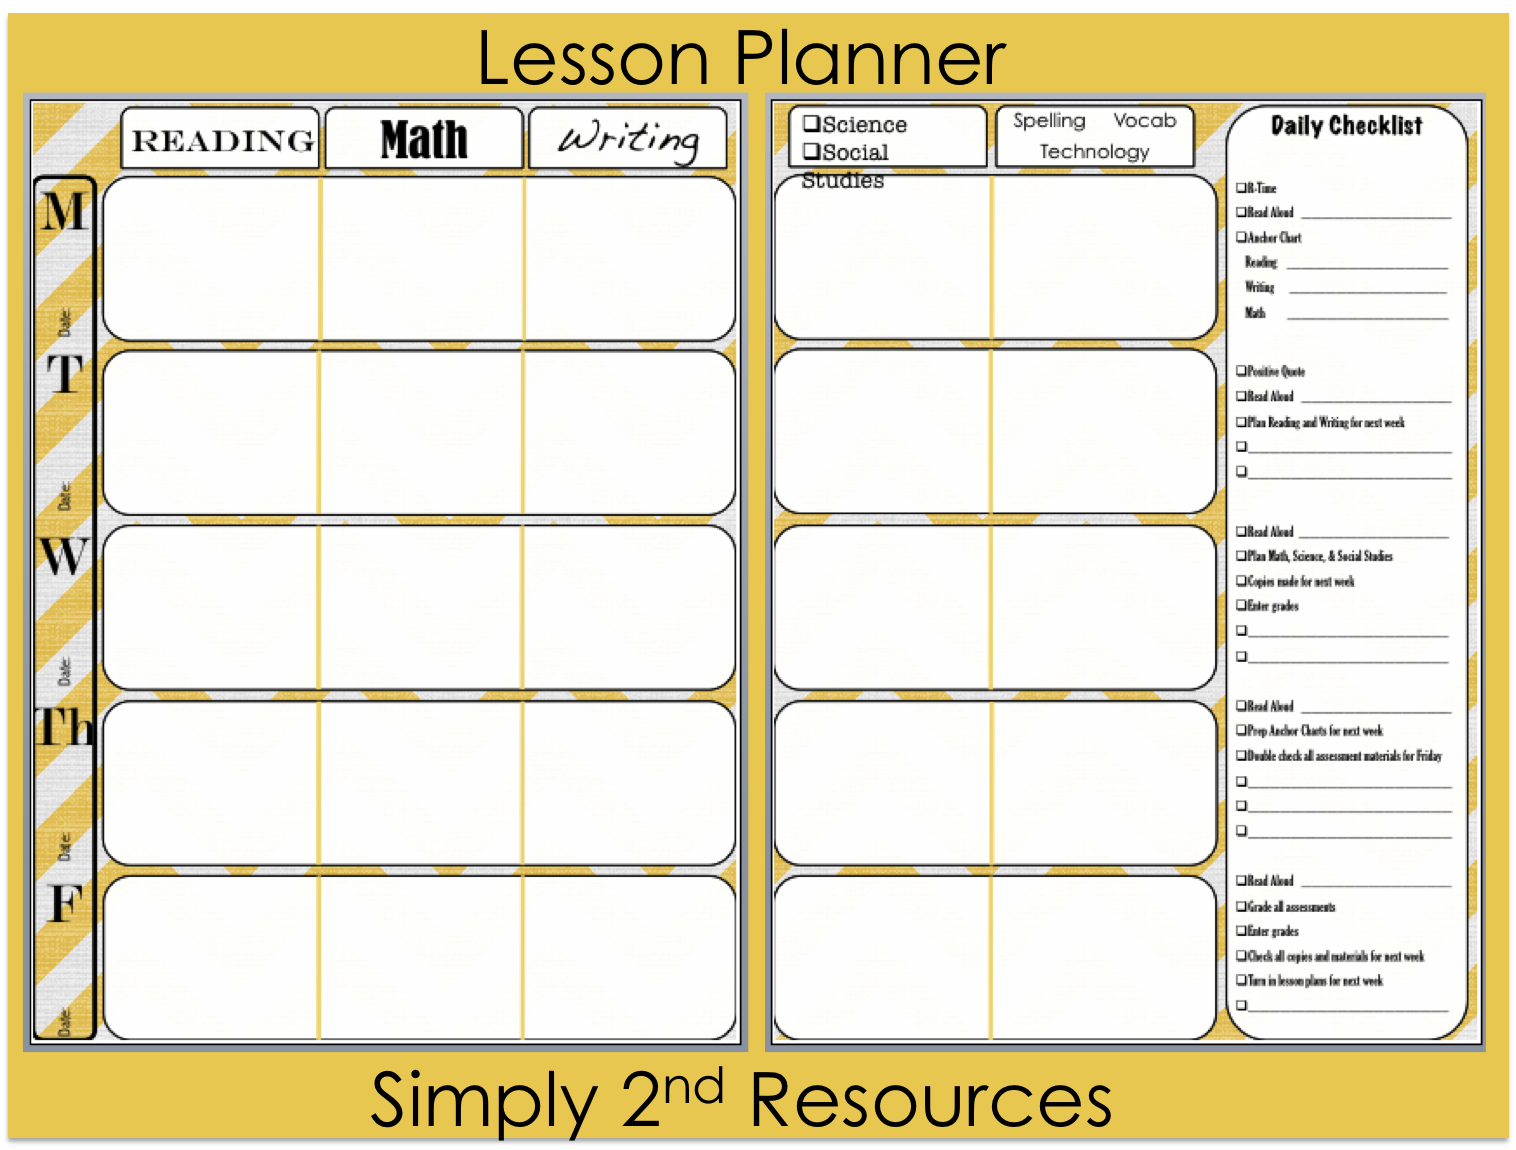 Simply Nd Resources Lesson Plan Template  So Excited To Share